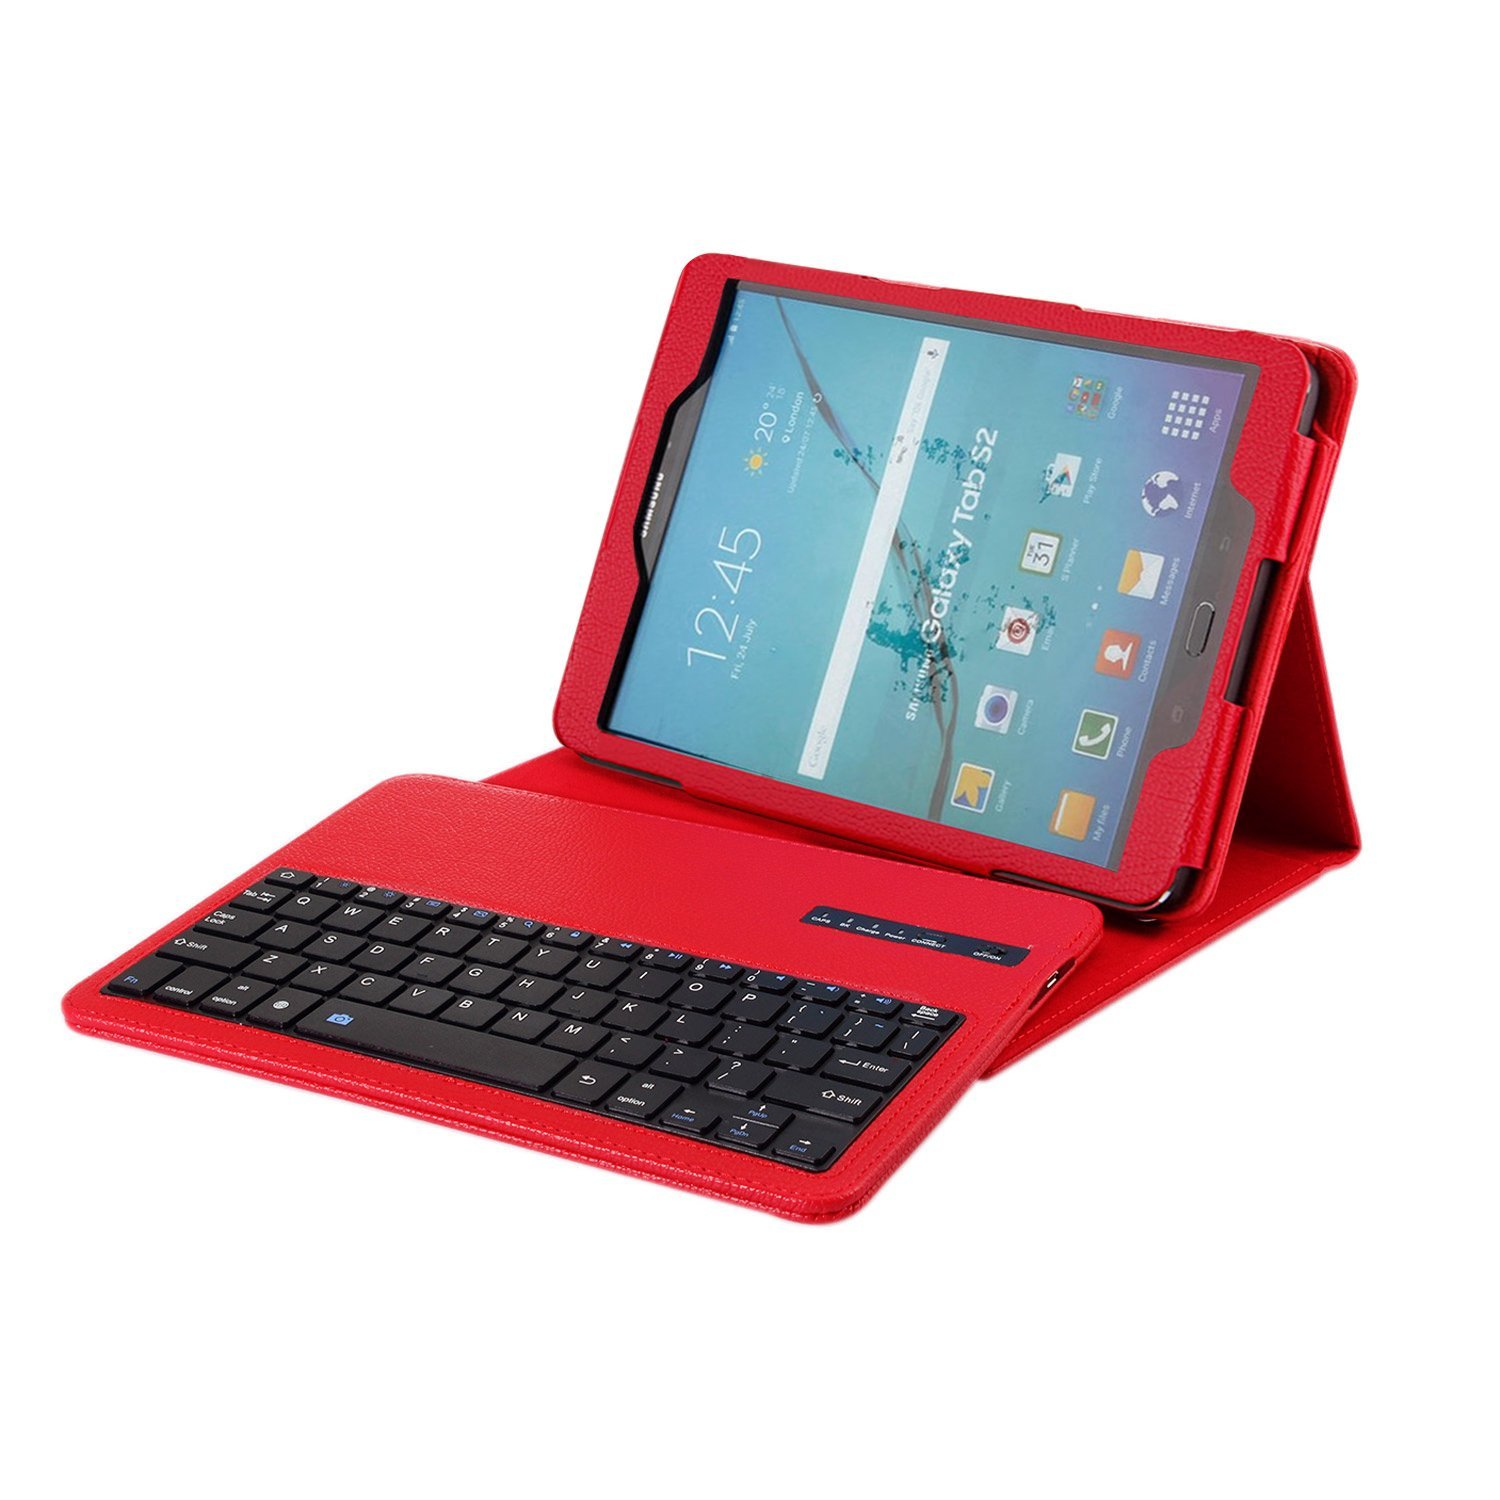 for Samsung Galaxy Tab S2 9.7 Removable Wireless Keyboard Case Cover for Galaxy Tab S2 9.7 SM-T810 / T813 / T815 / T819 Tablet 4v420 15 fsqd solenoid valve ordinary type electromagnetic valve pneumatic component air tools